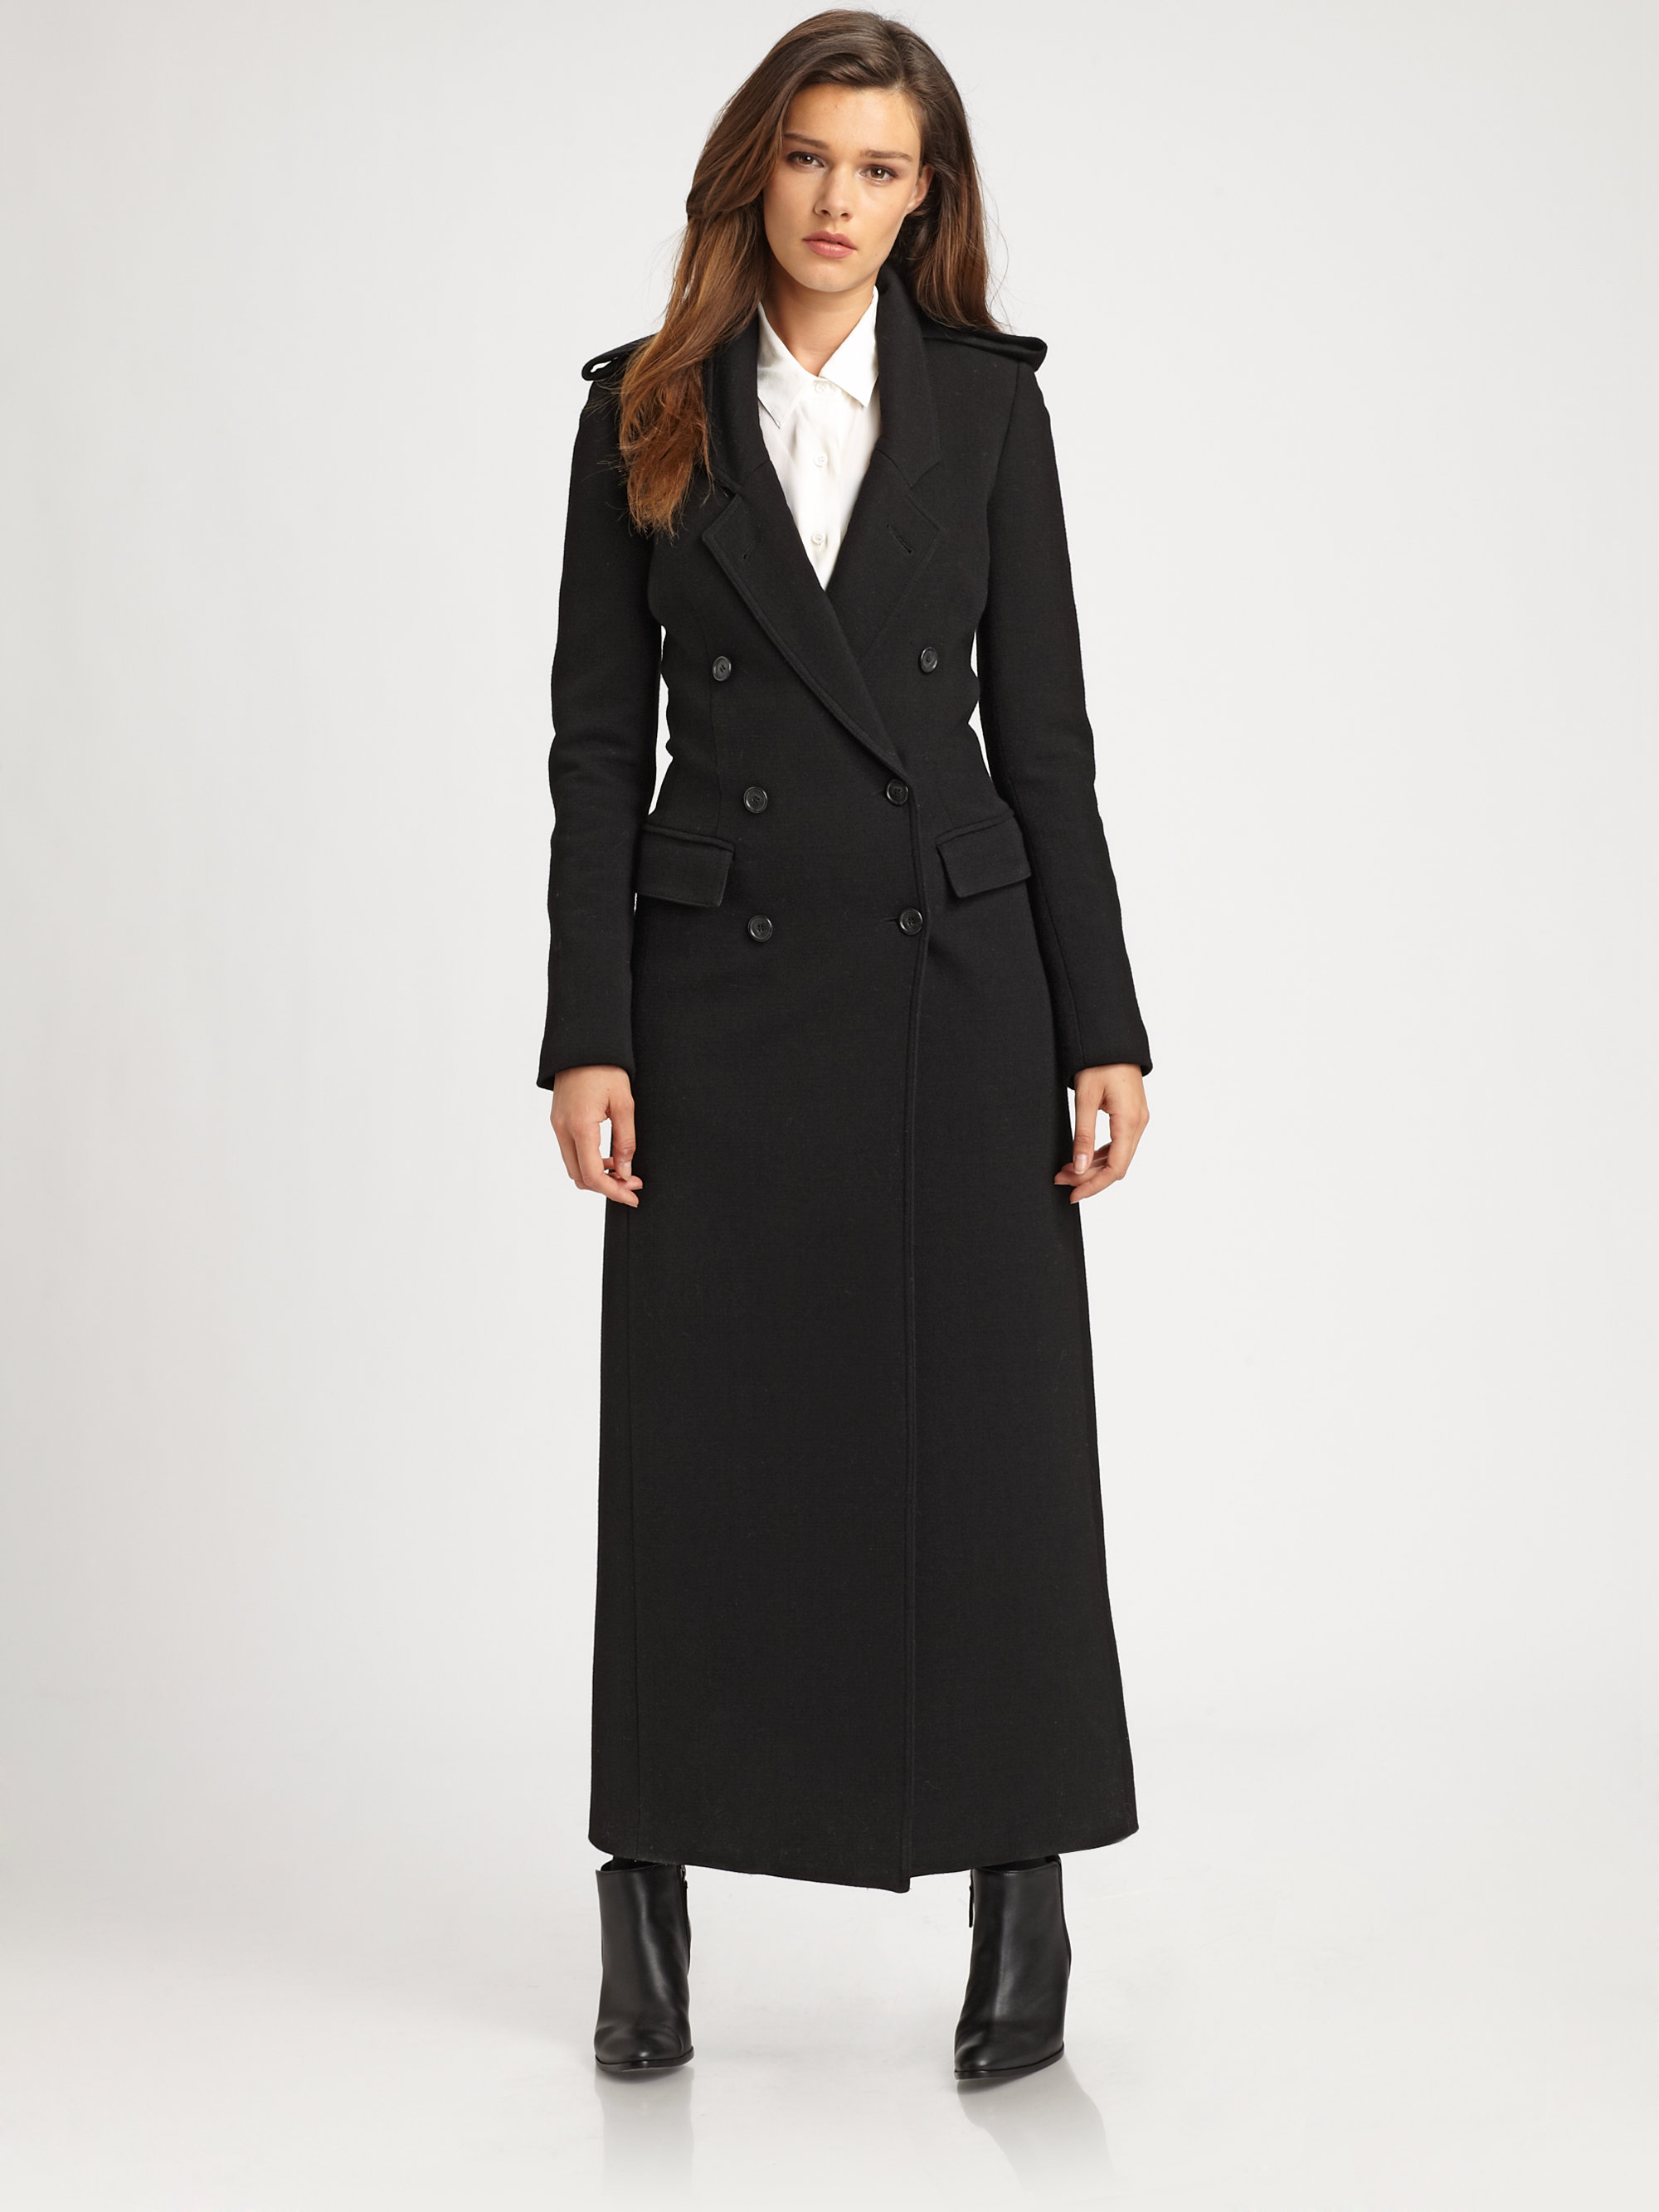 Lyst Smythe Tailored Maxi Coat In Black